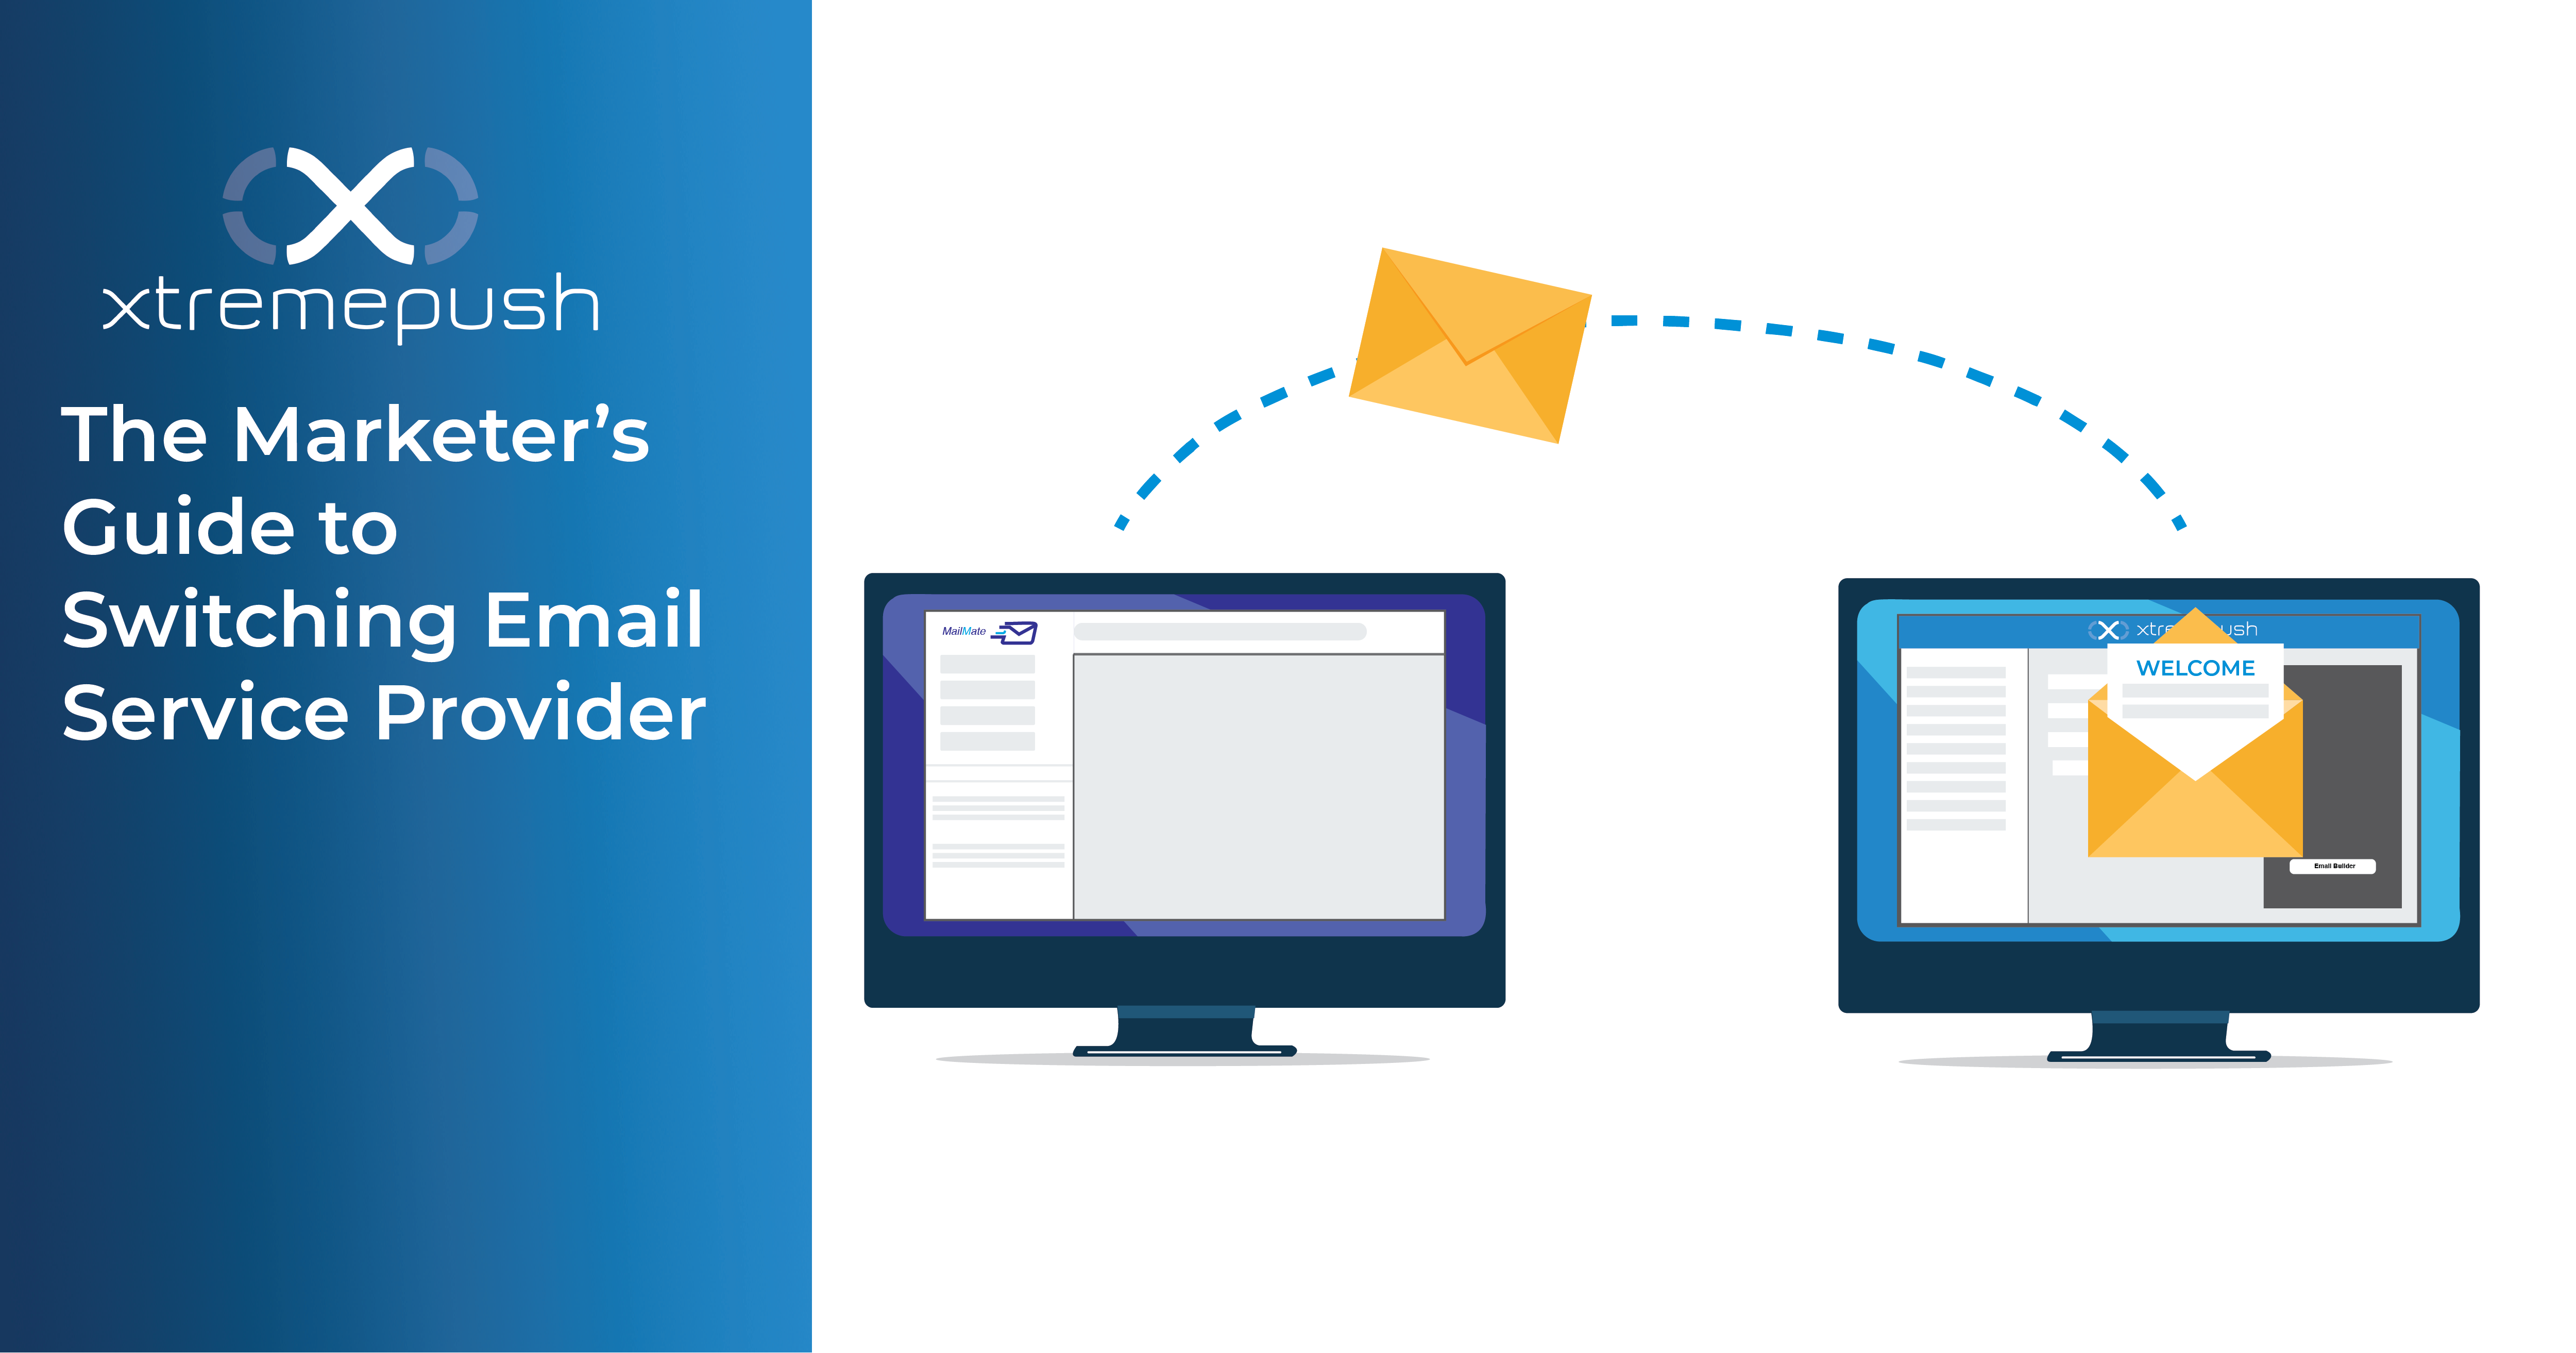 marketer's guide to switching email service provider-